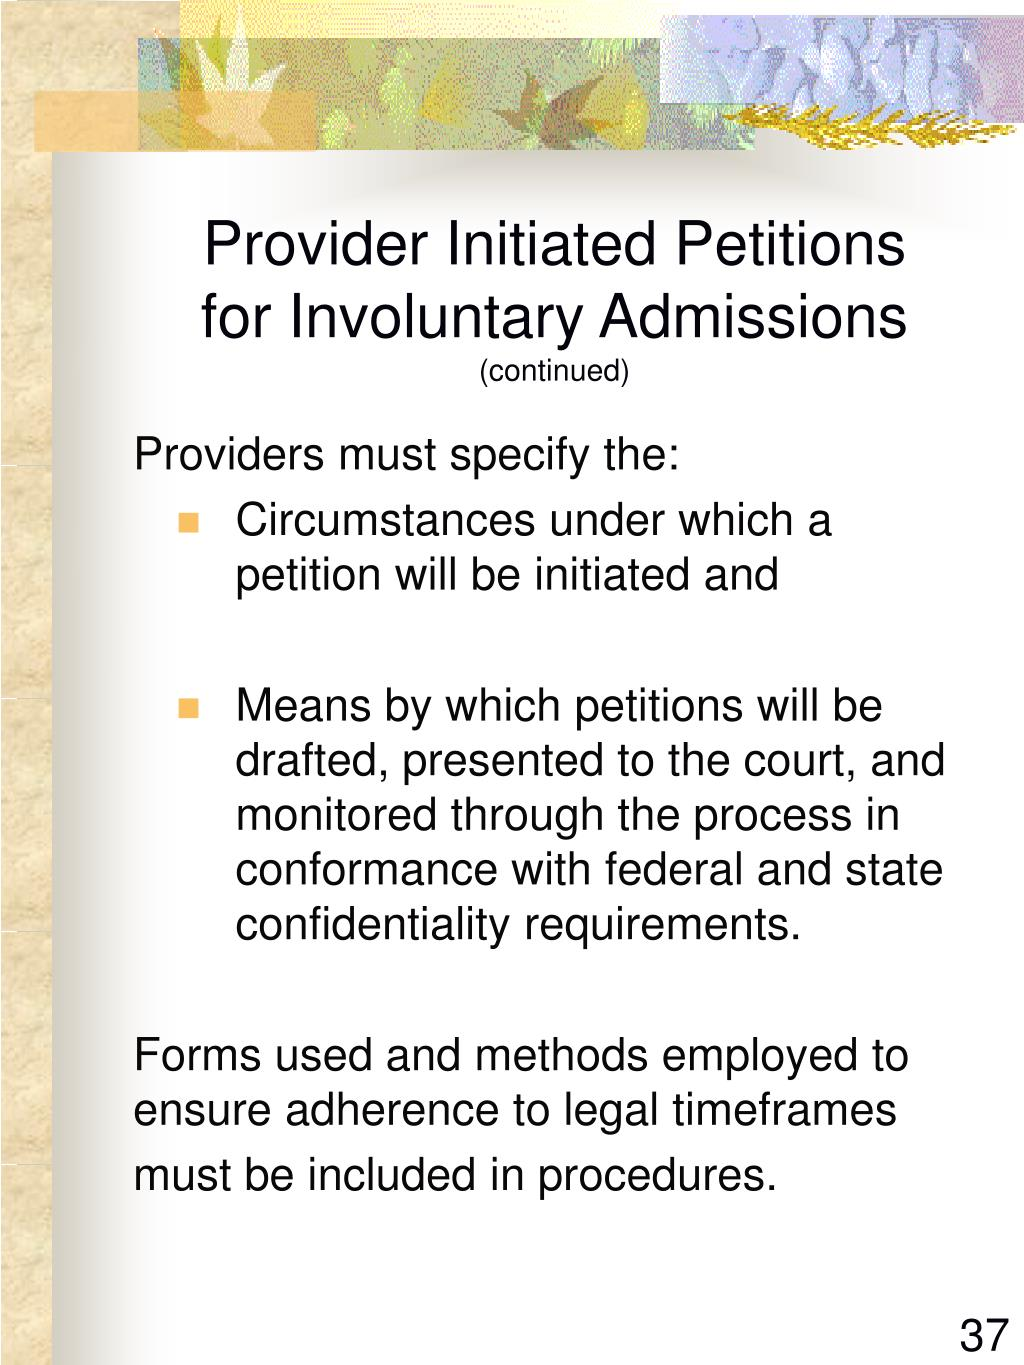 Provider Initiated Petitions